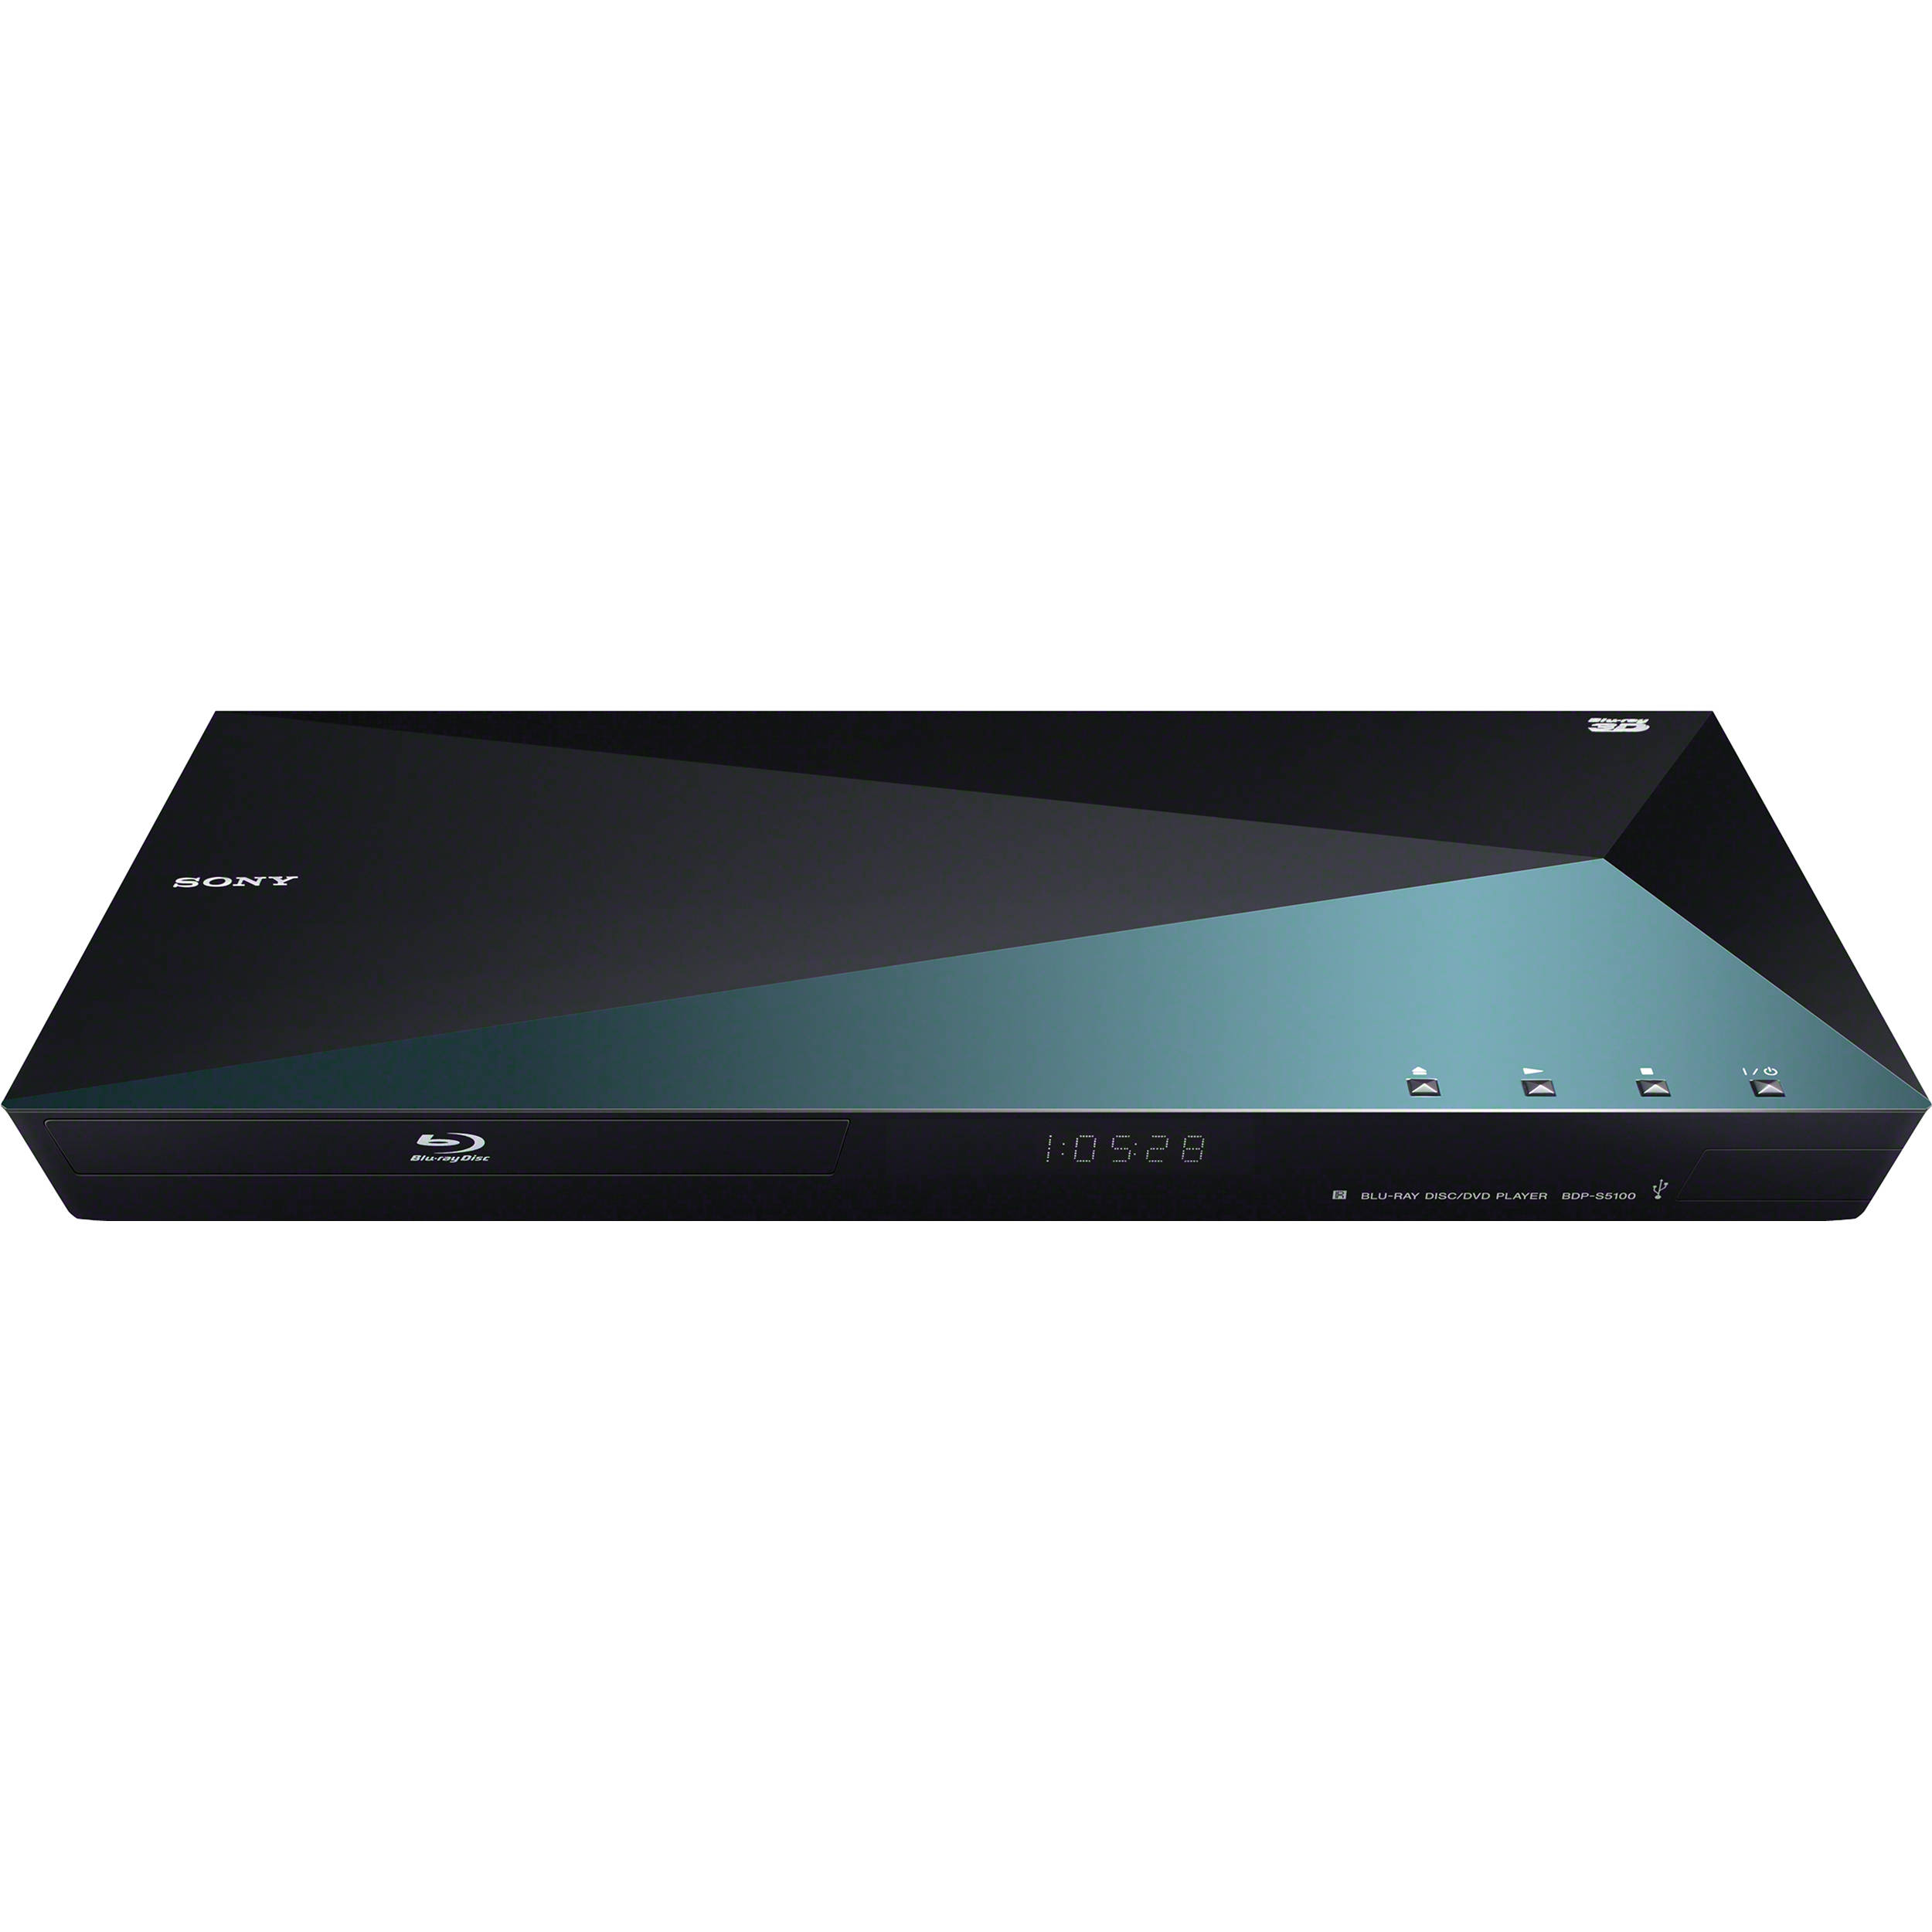 sony bdp s5100 3d blu ray disc player with super wi fi bdp. Black Bedroom Furniture Sets. Home Design Ideas